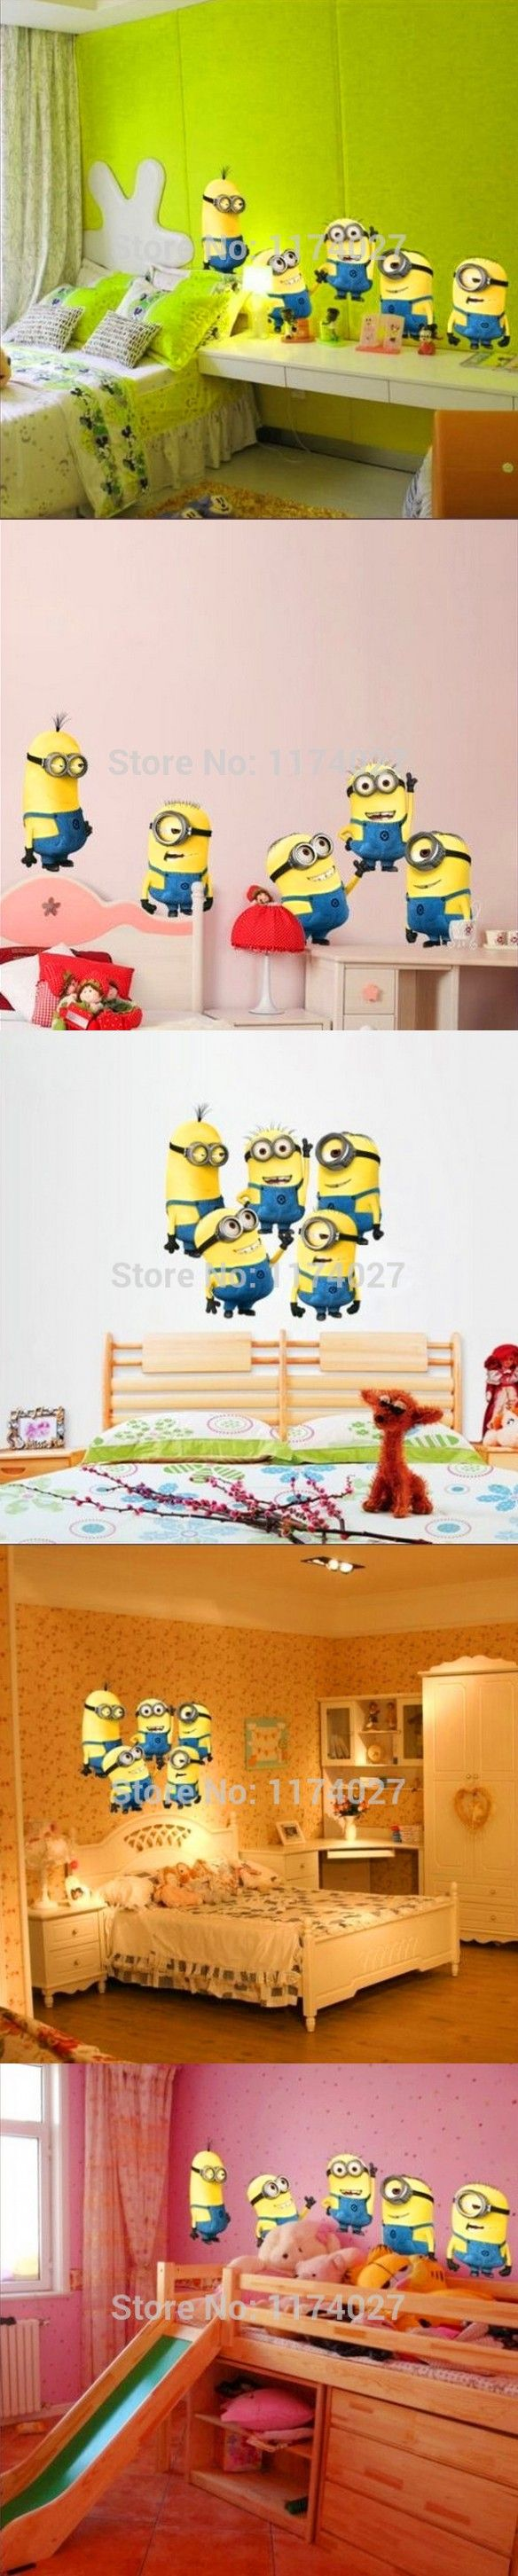 Free shipping cute MINIONS wall stickers home decor Removable minion wallpaper for kids room $2